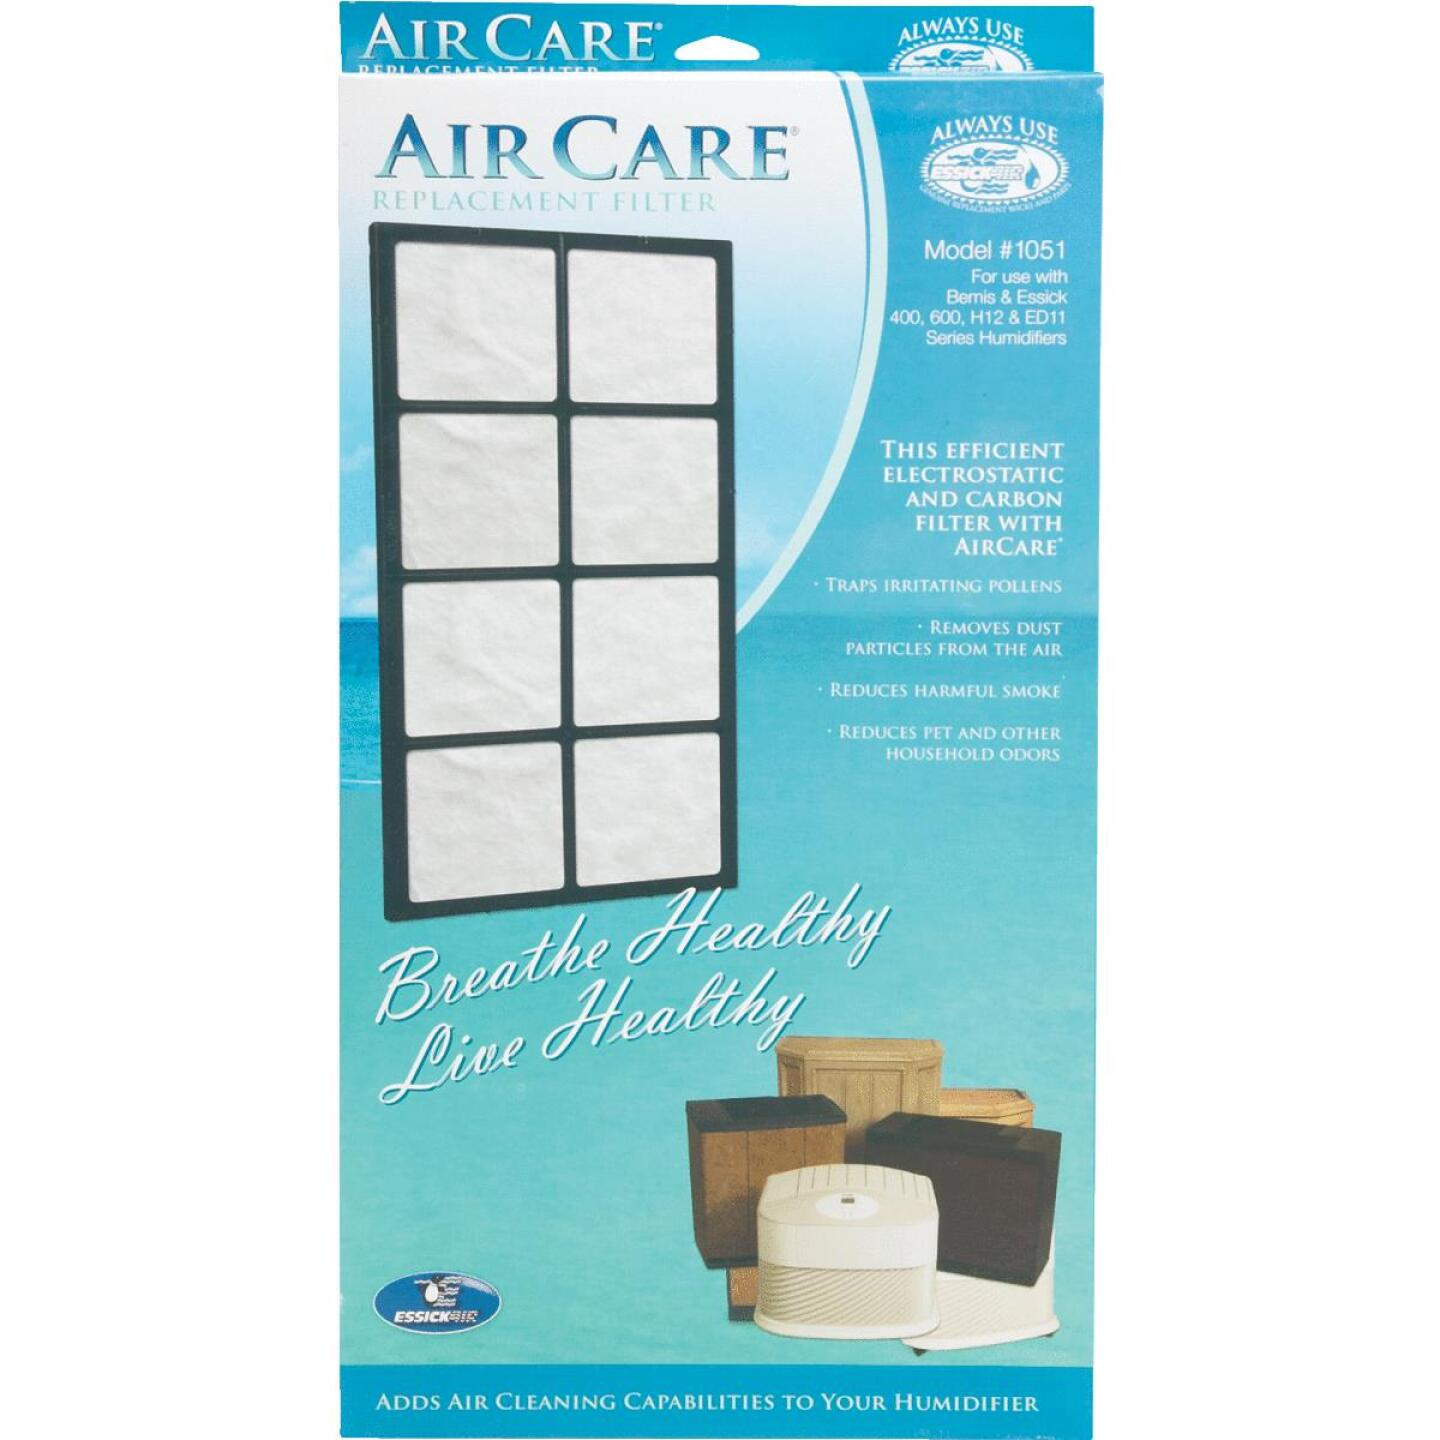 Essick Air AIRCARE 1051 Humidifier Filter with Air Filter Image 2